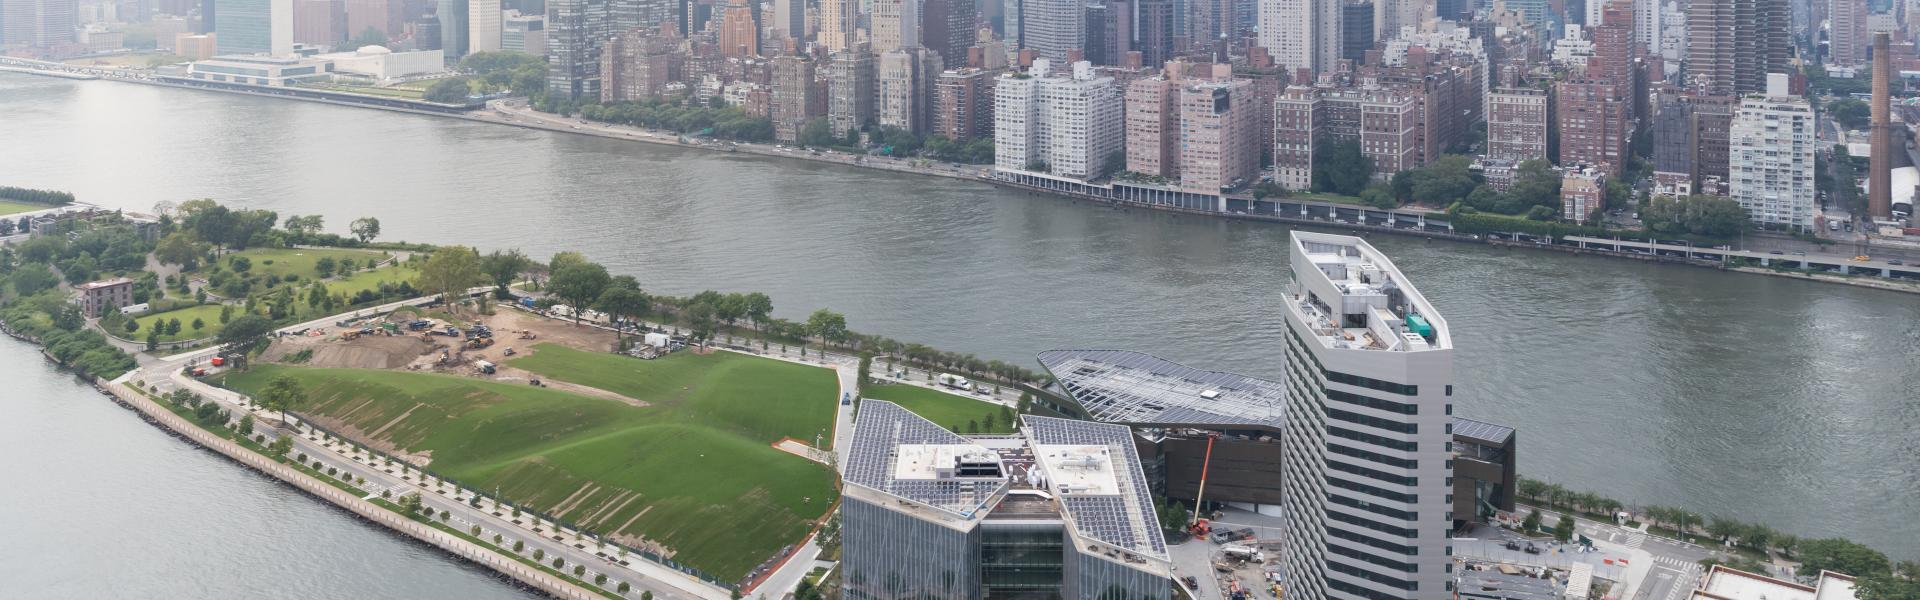 cornell tech, arial view